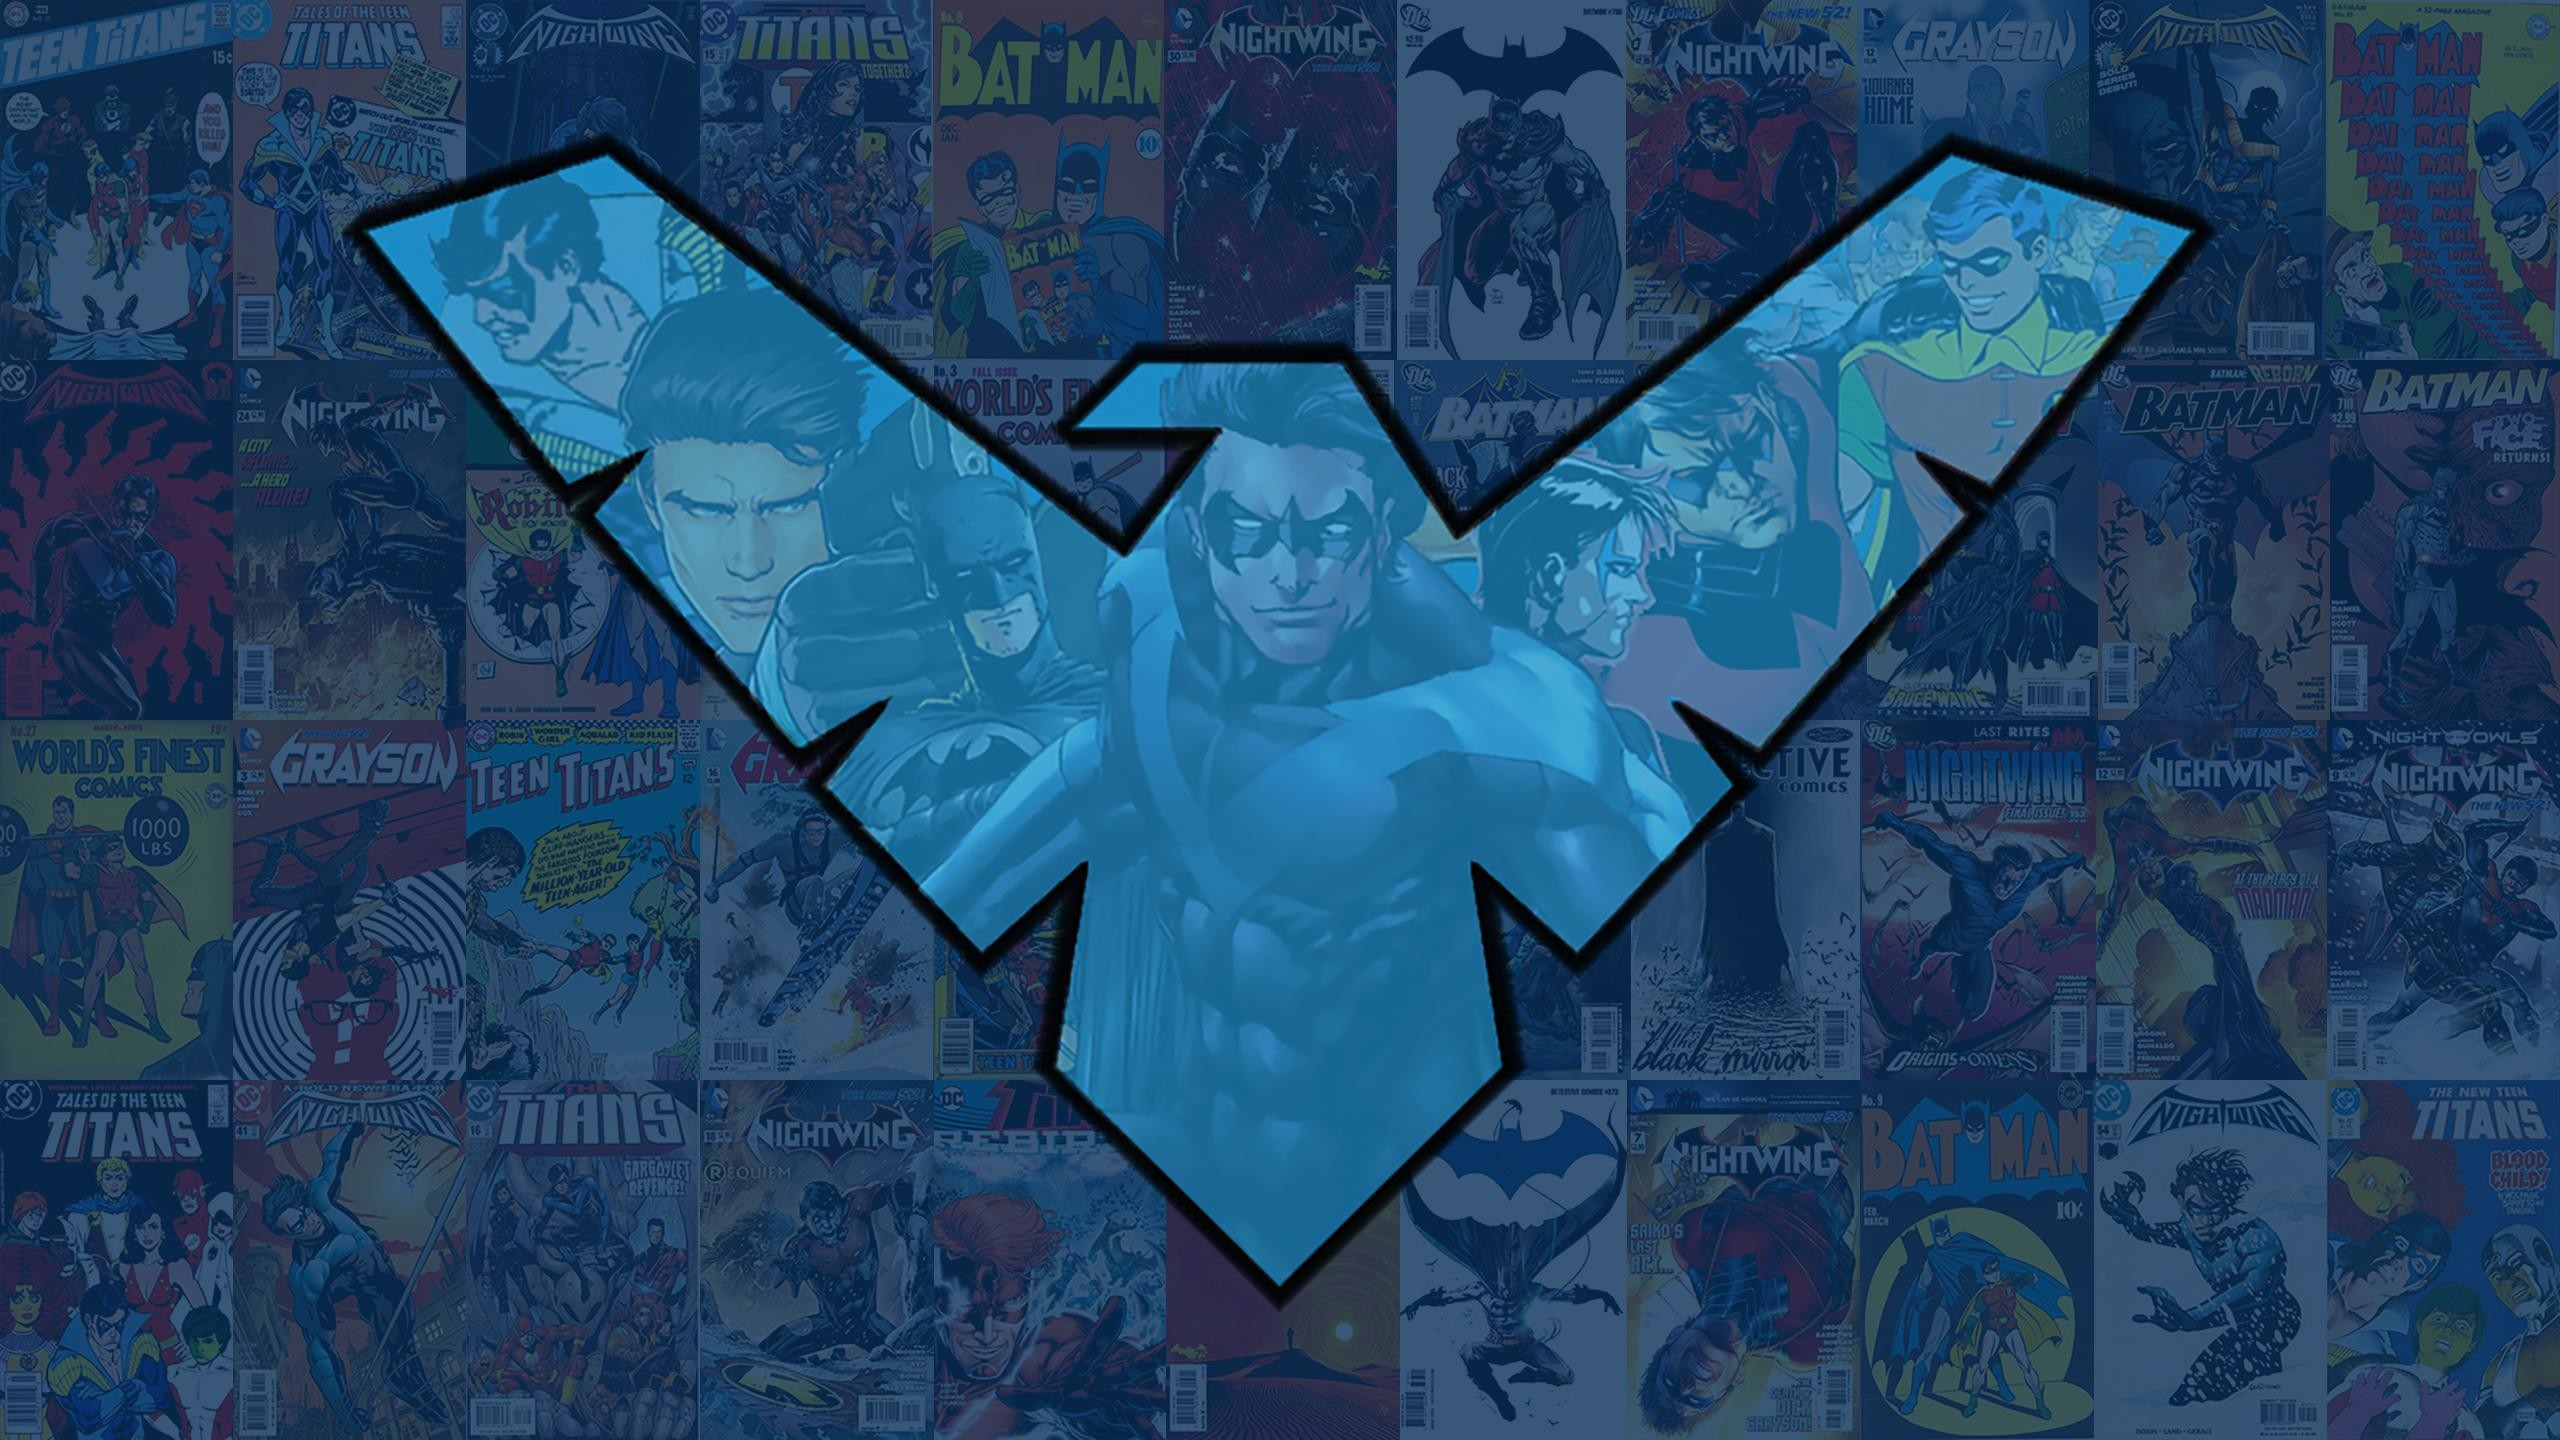 2560x1440 Batman Nightwing Android Central